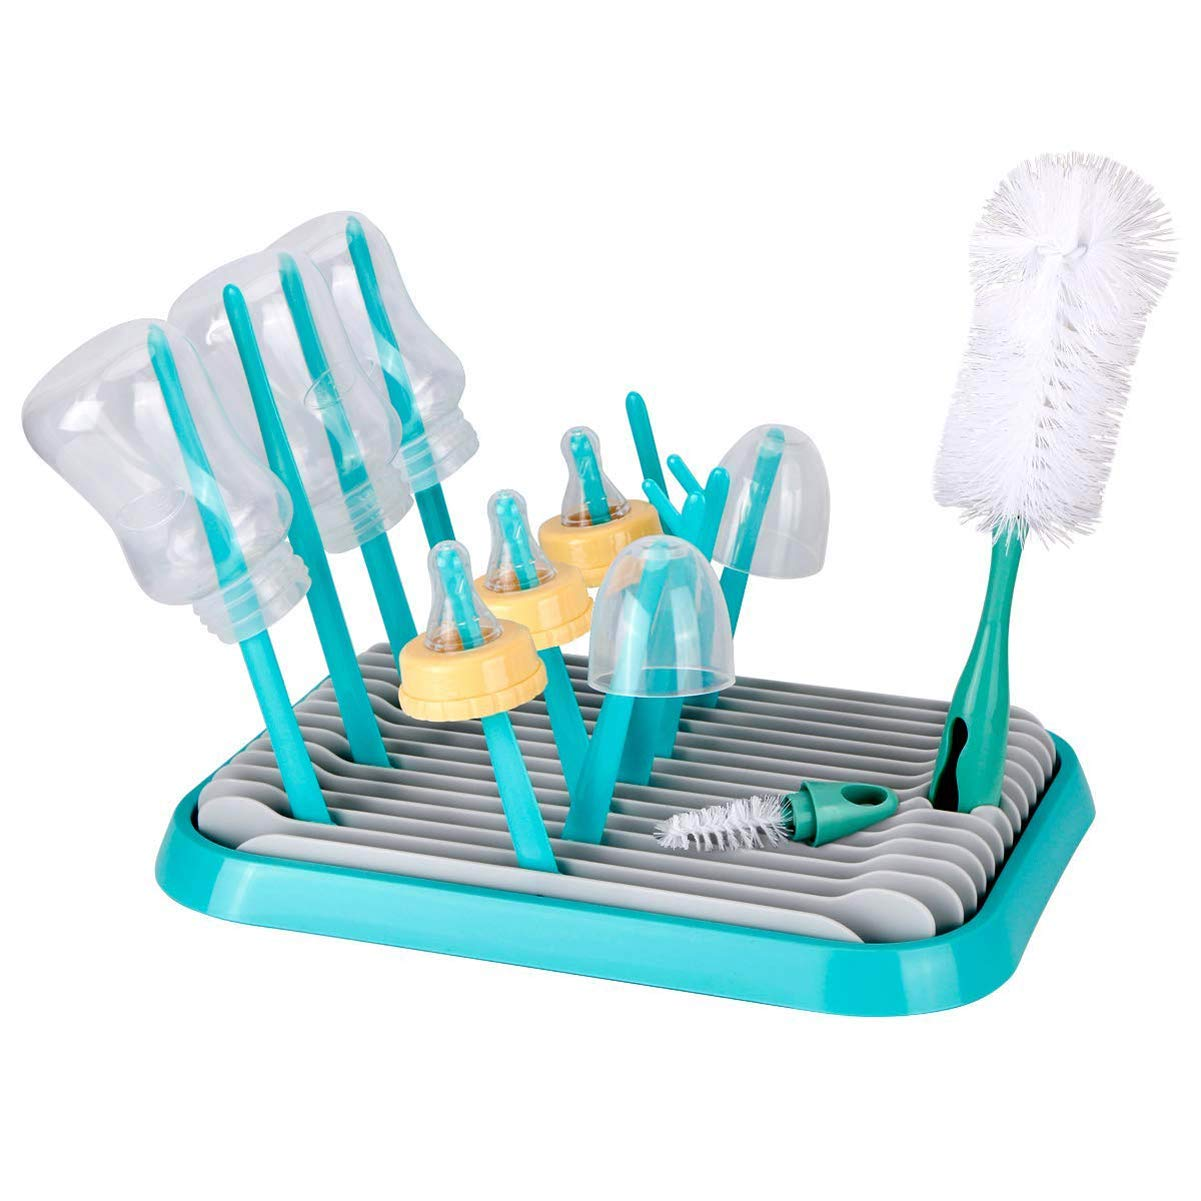 Baby Bottle Drying Rack with Bottle Cleaning Brush Set/Plastic Bag and Bottle Dryer - Drying Rack Saves Money and The Planet Folds for Easy Storage by Hestier